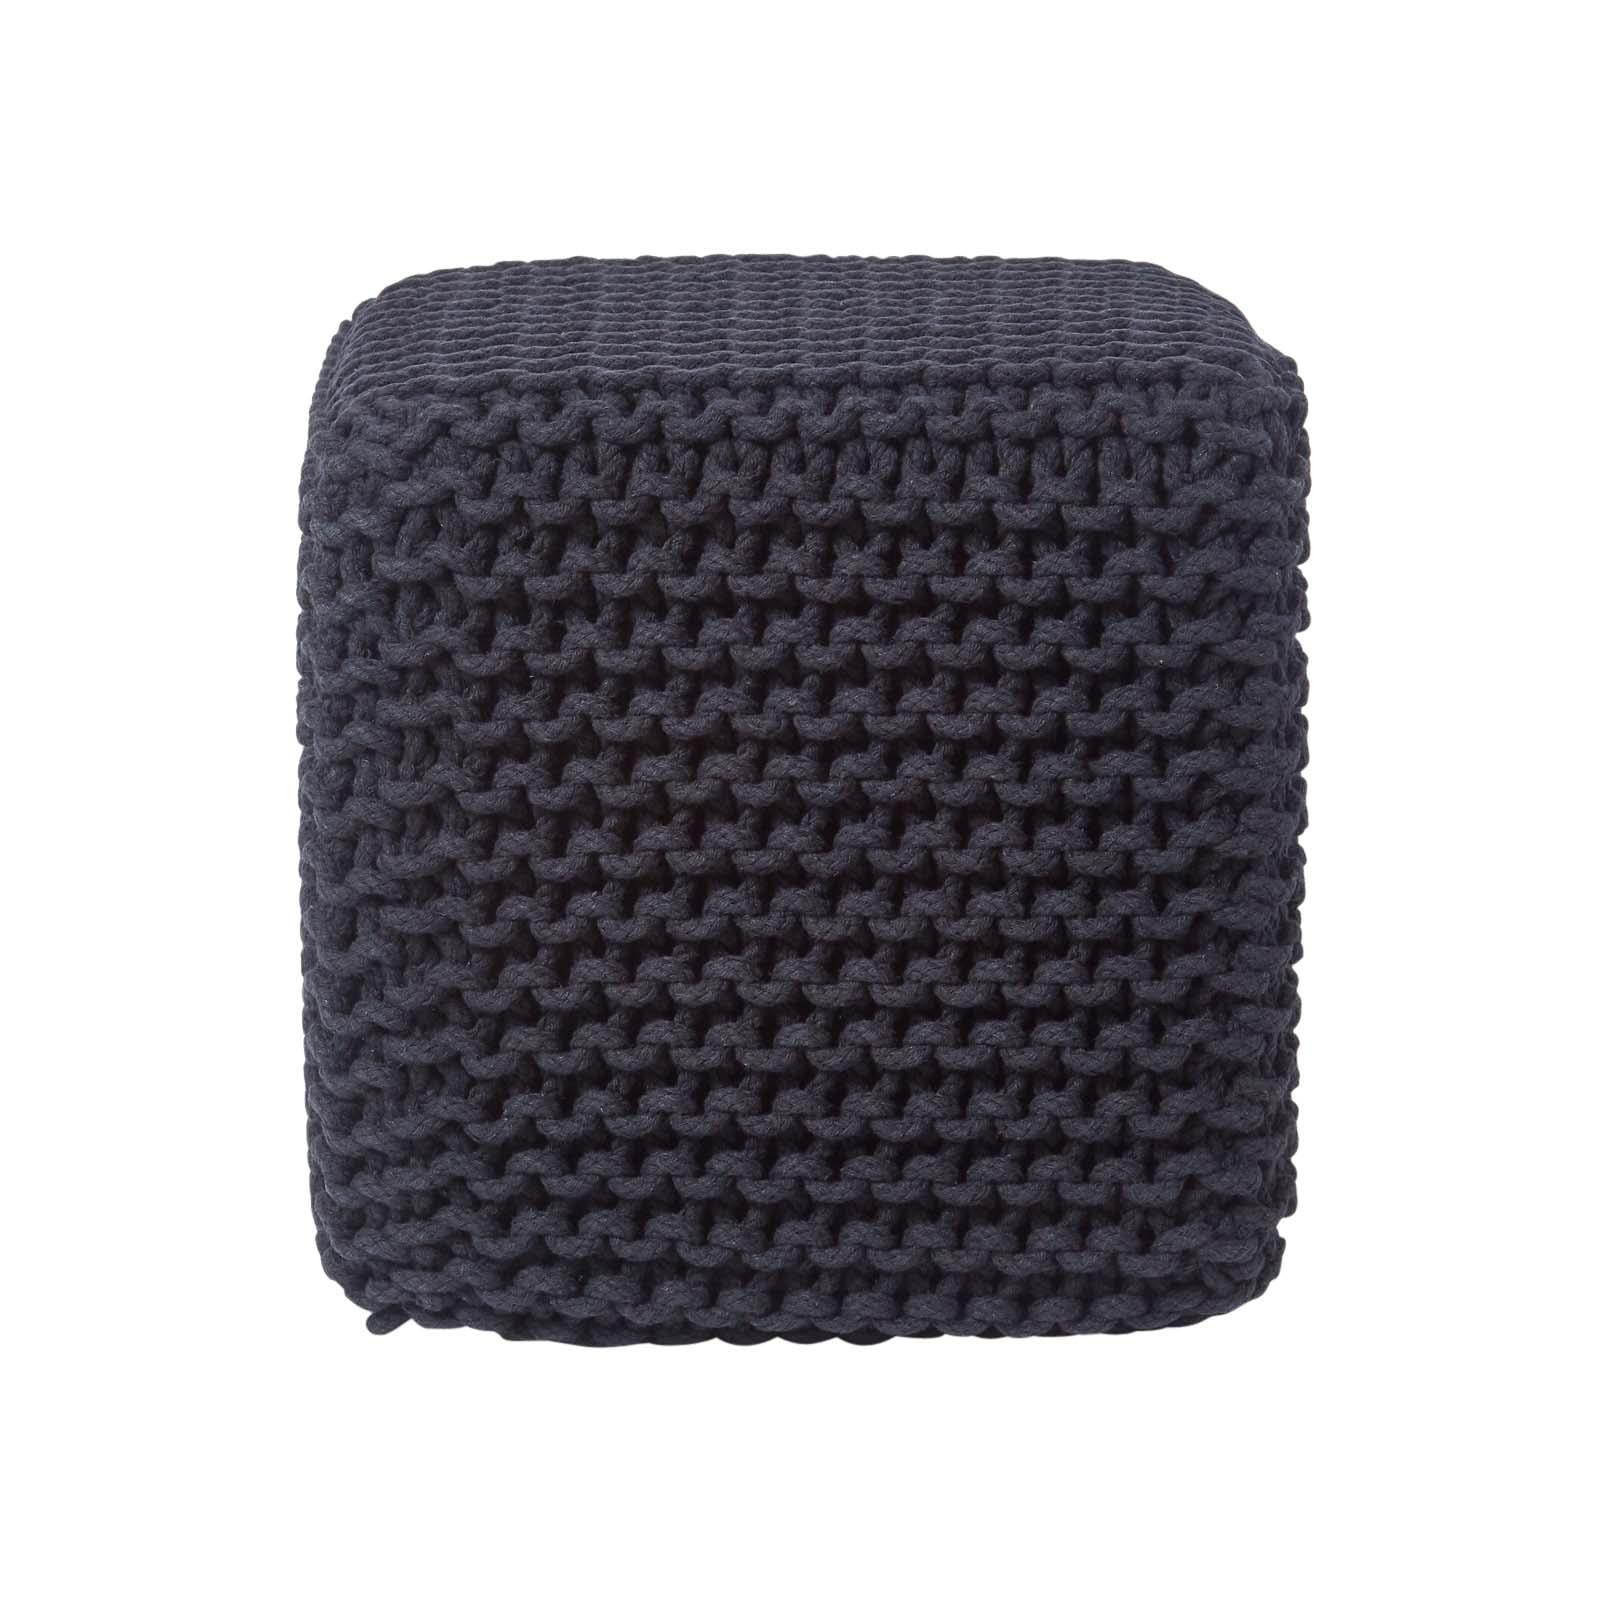 Hand-Knitted-100-Cotton-Pouffes-Round-Sphere-Or-Cube-Square-Chunky-Footstools thumbnail 4